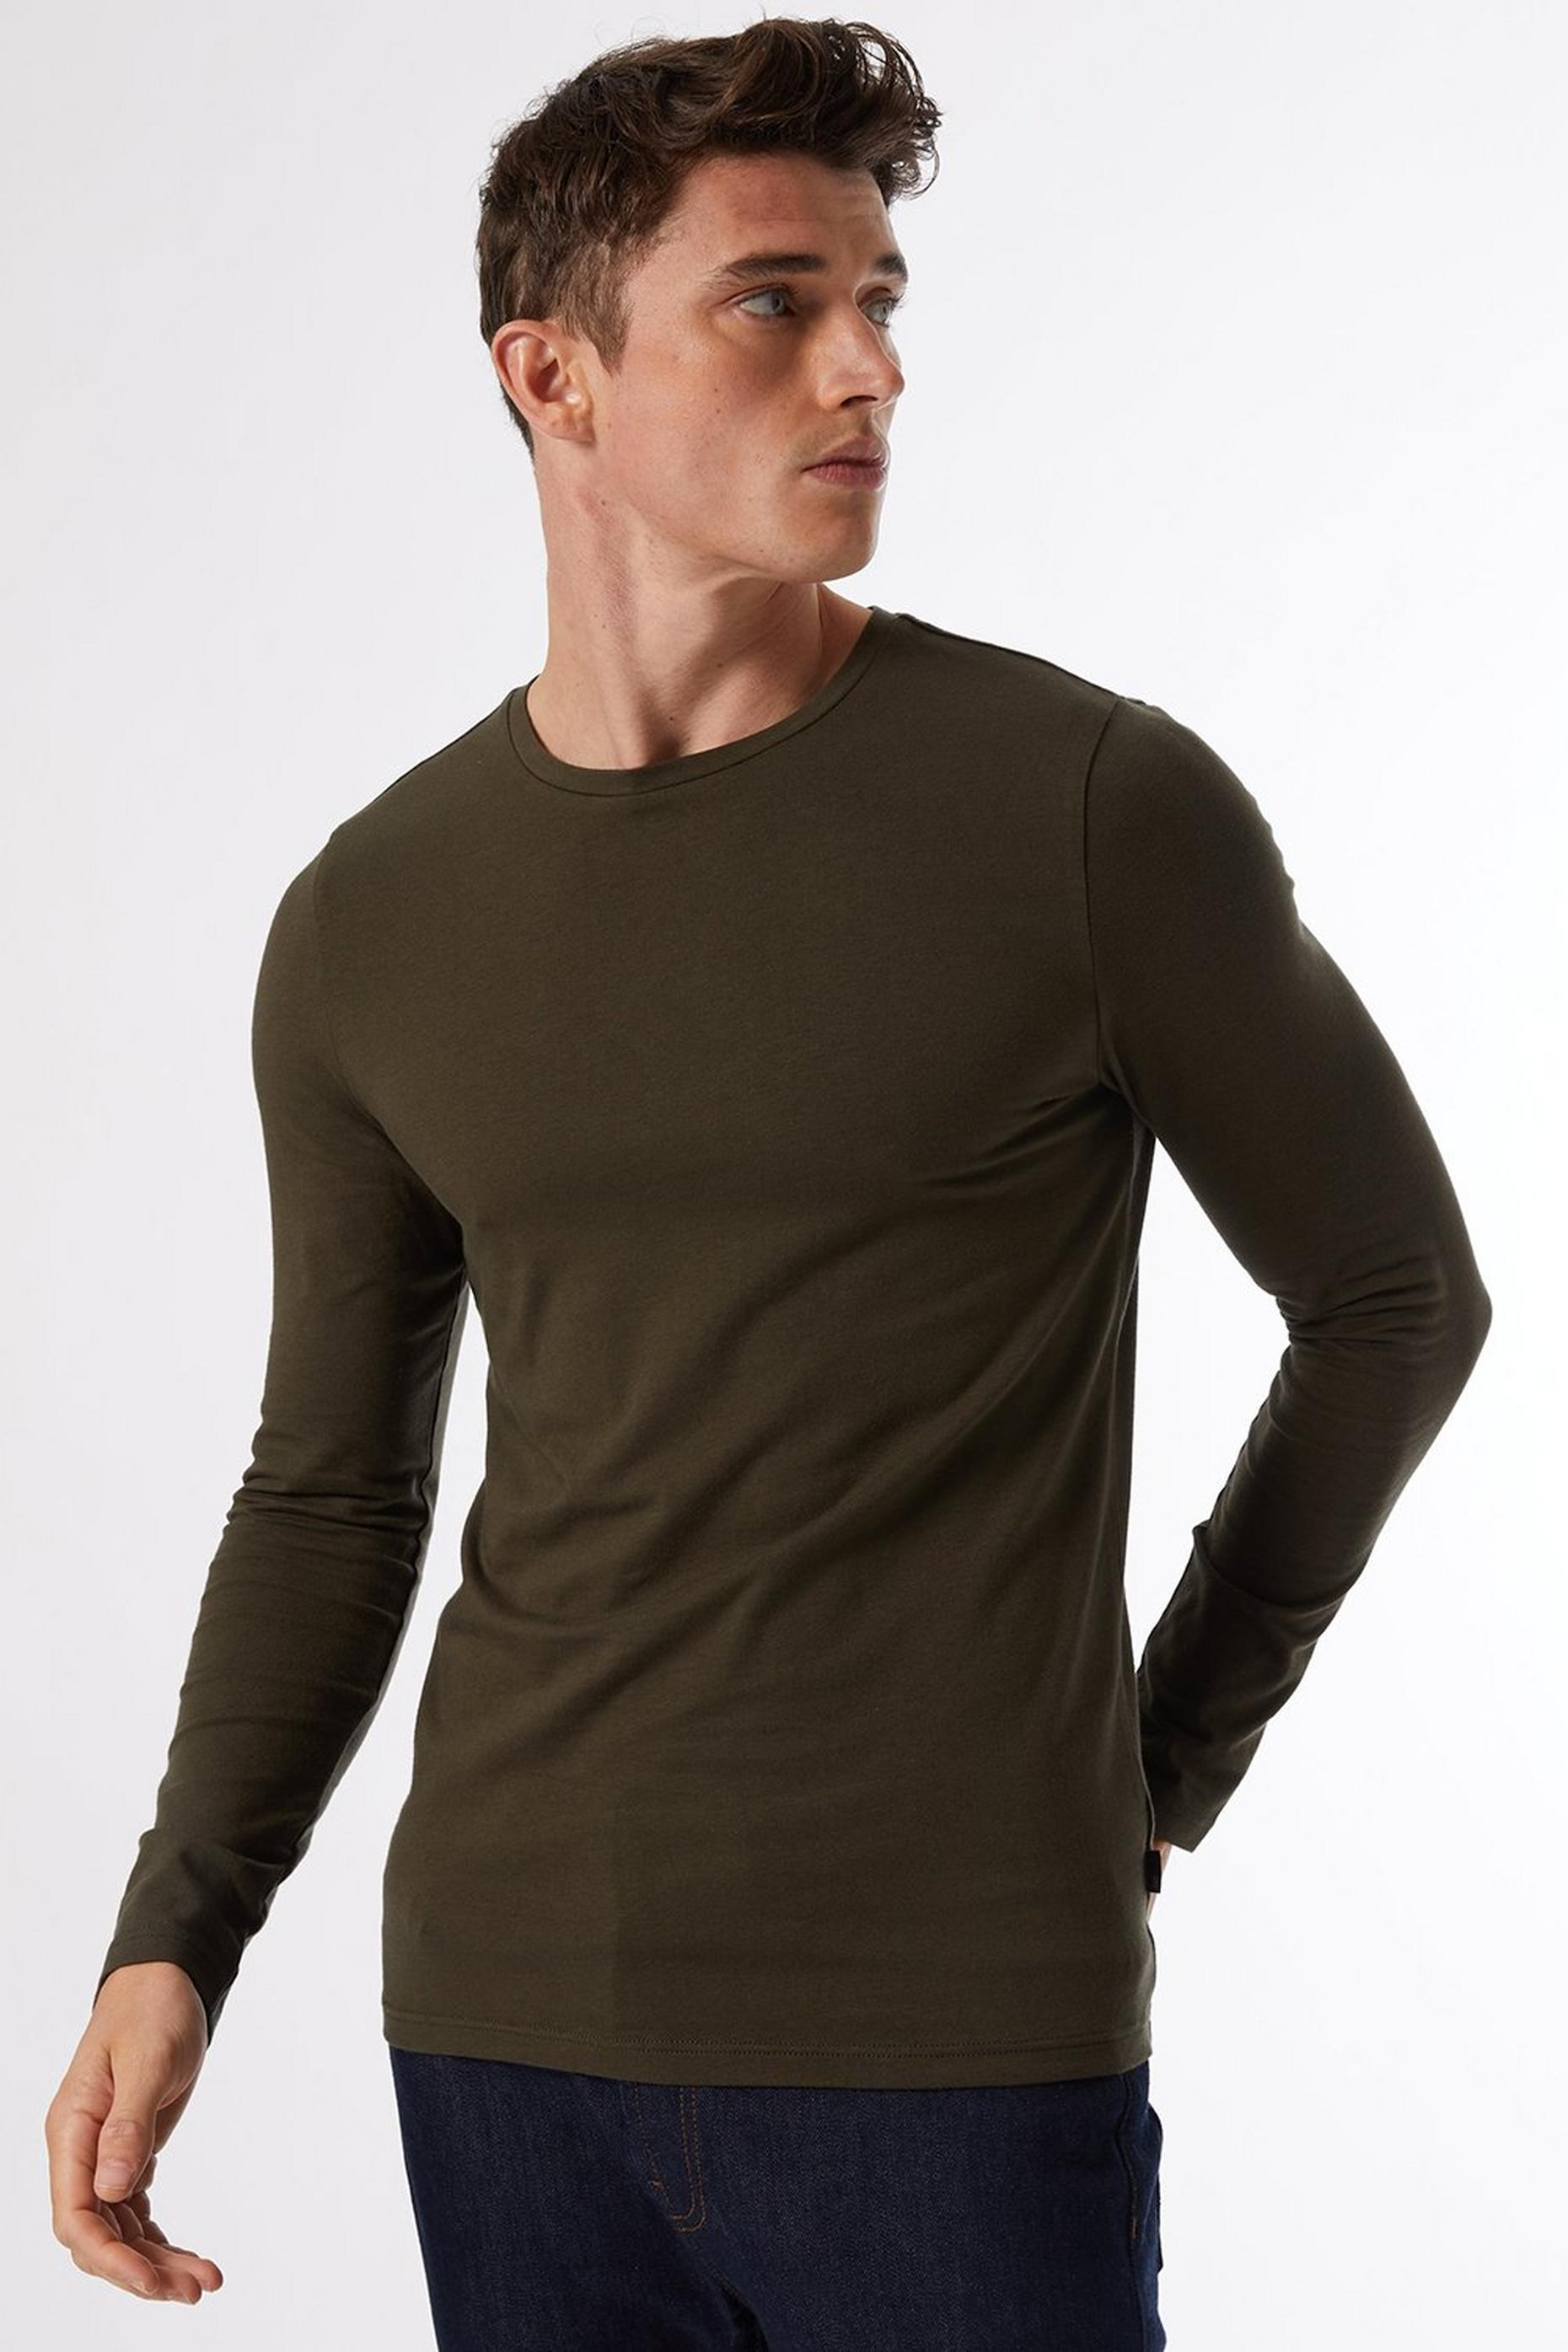 Dark Khaki Long Sleeved Muscle Fit TShirt